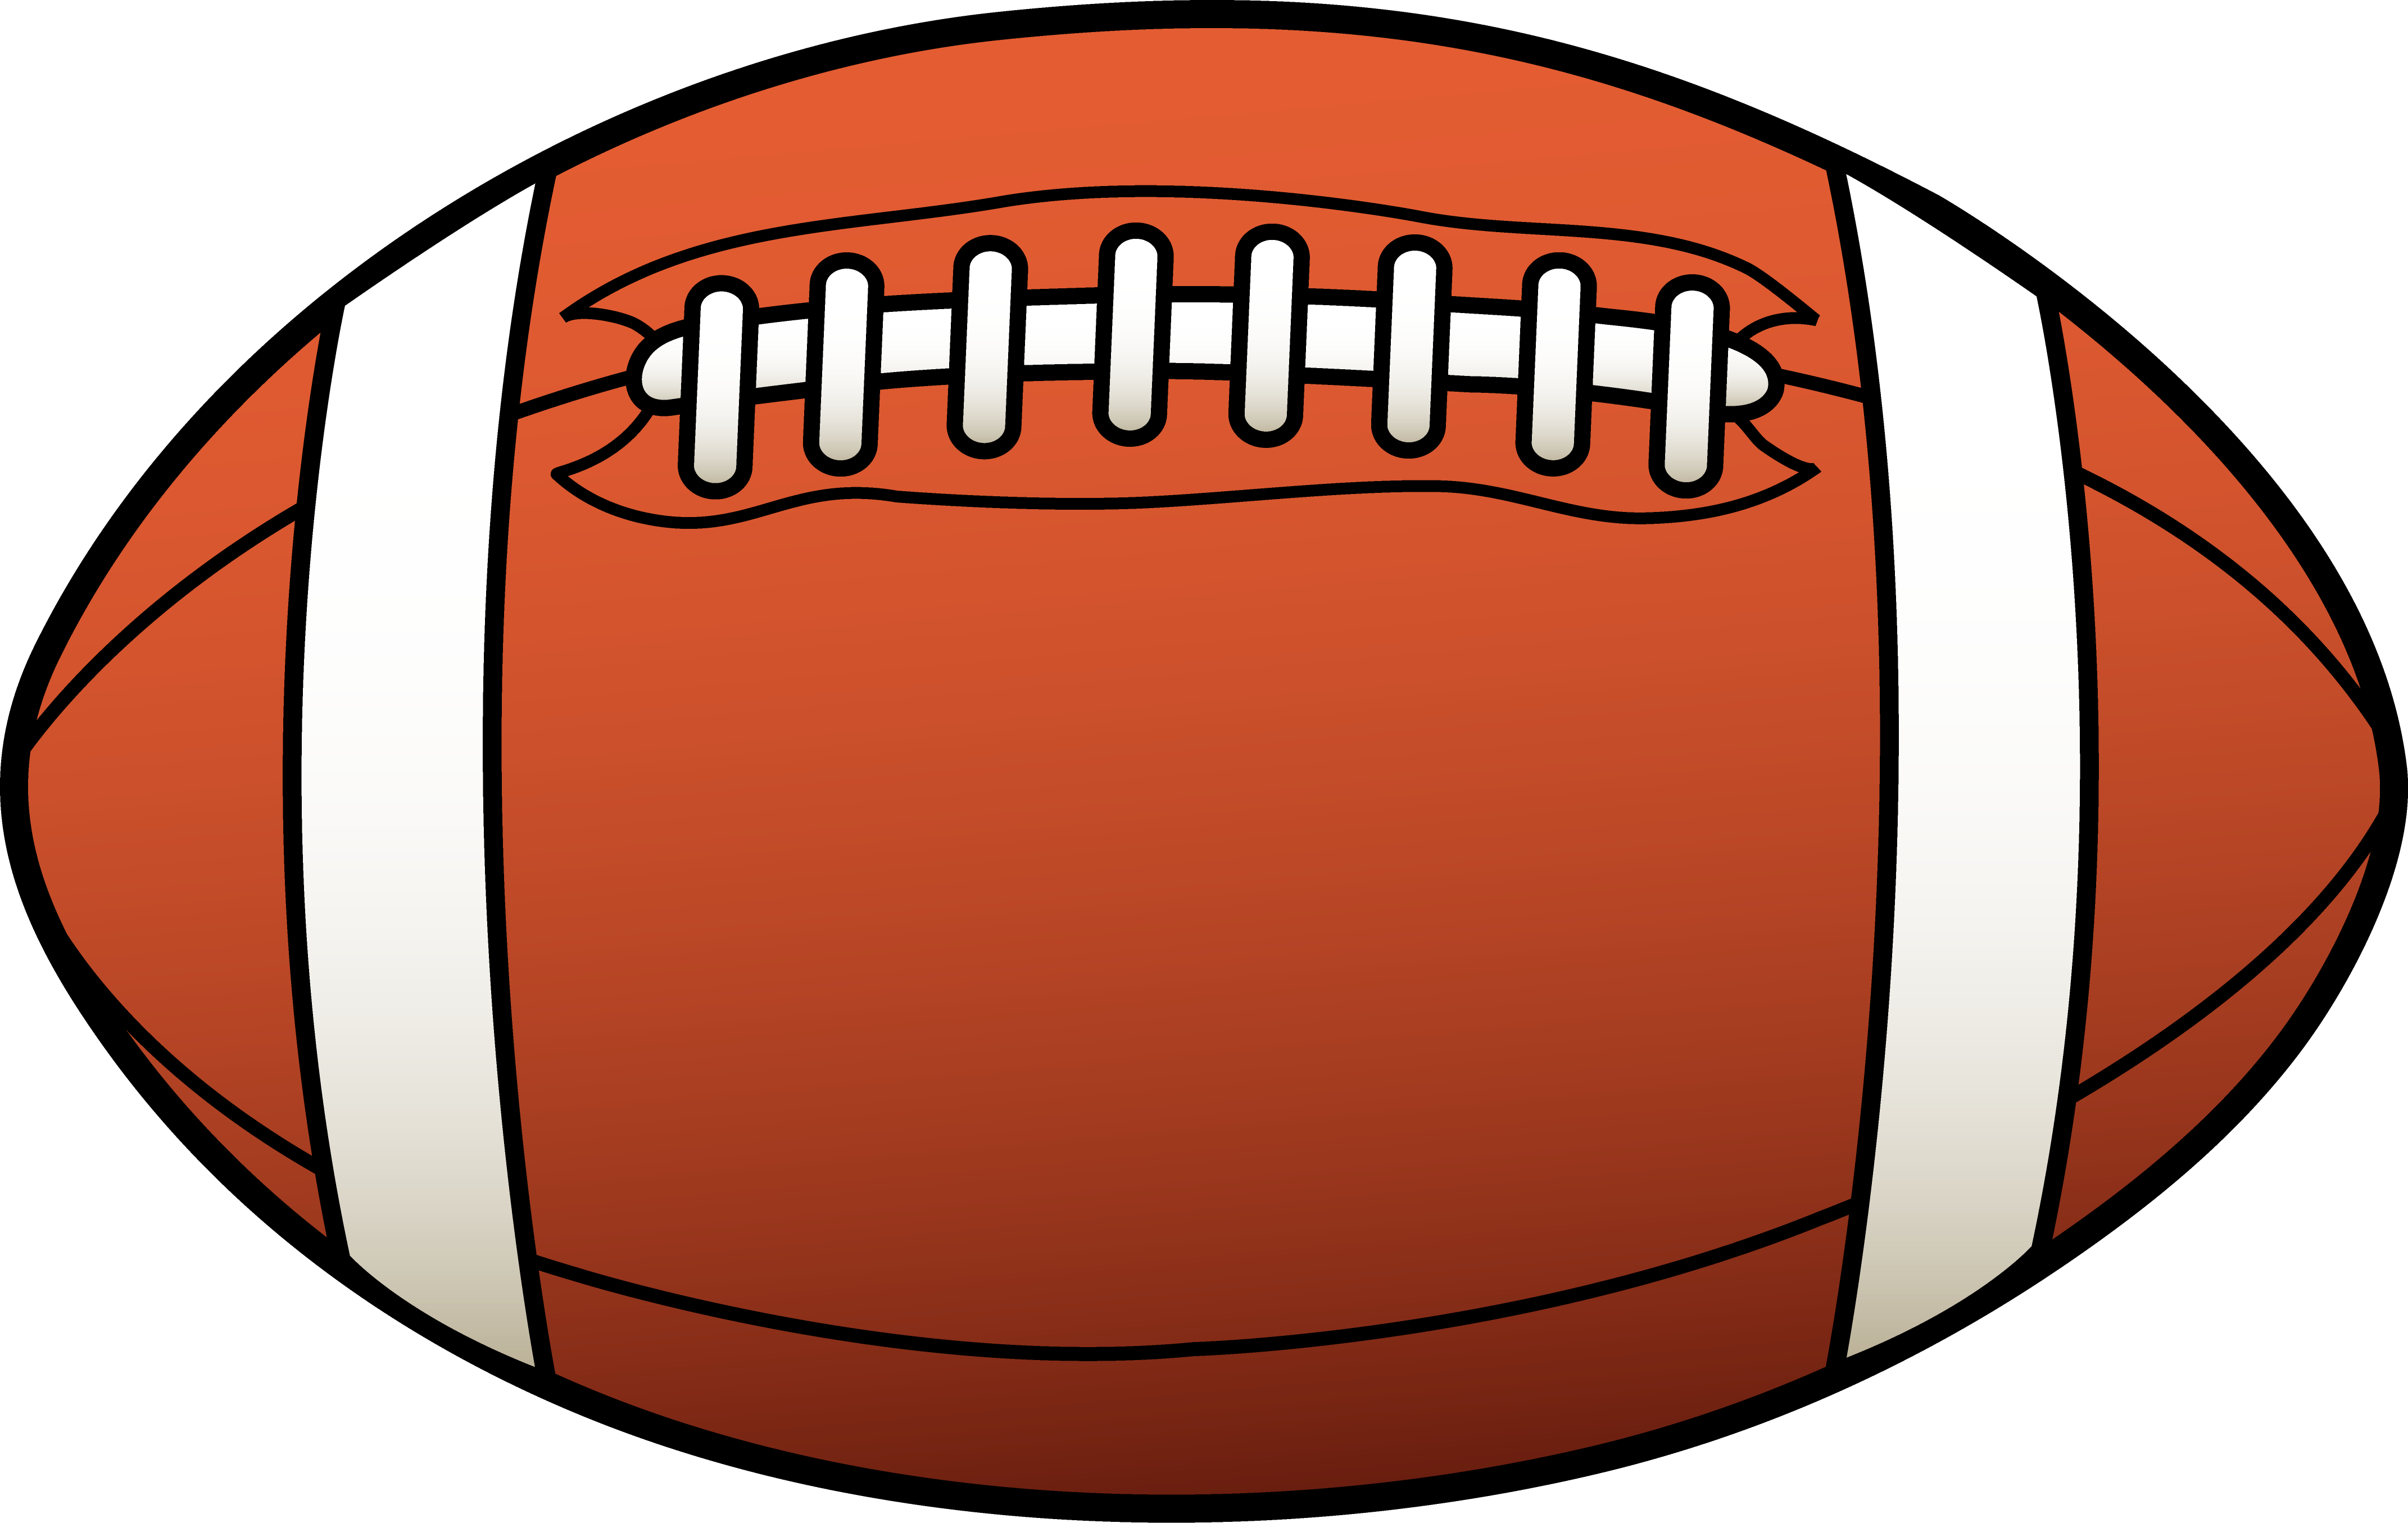 ... Super Bowl Clip Art Free  - Super Bowl Clip Art Free